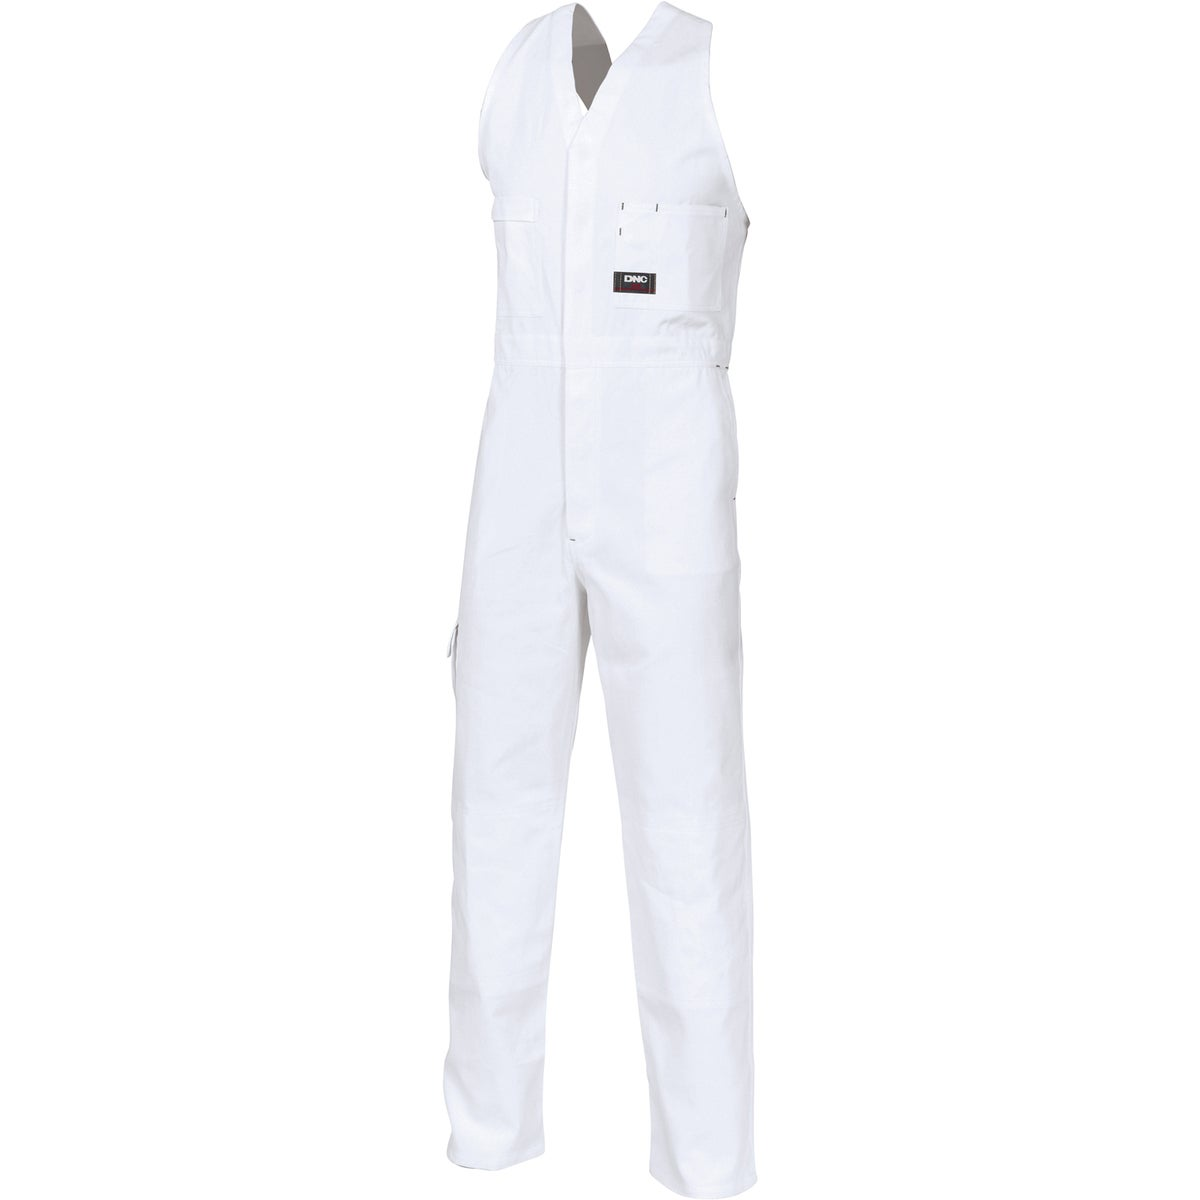 DNC Cotton Drill Action Back Overall - White